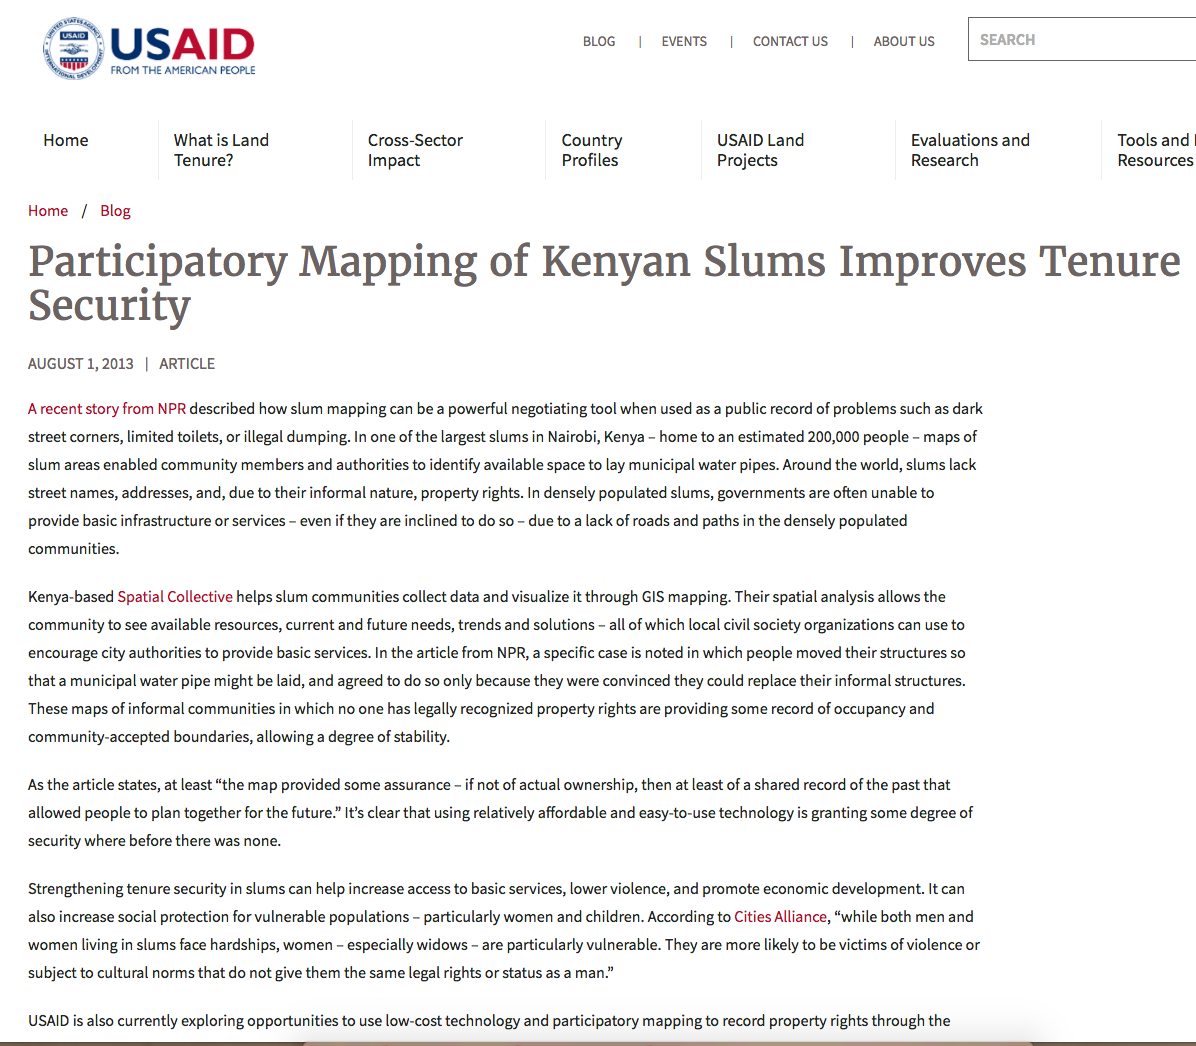 Participatory Mapping of Kenyan Slums Improves Tenure Security cover image